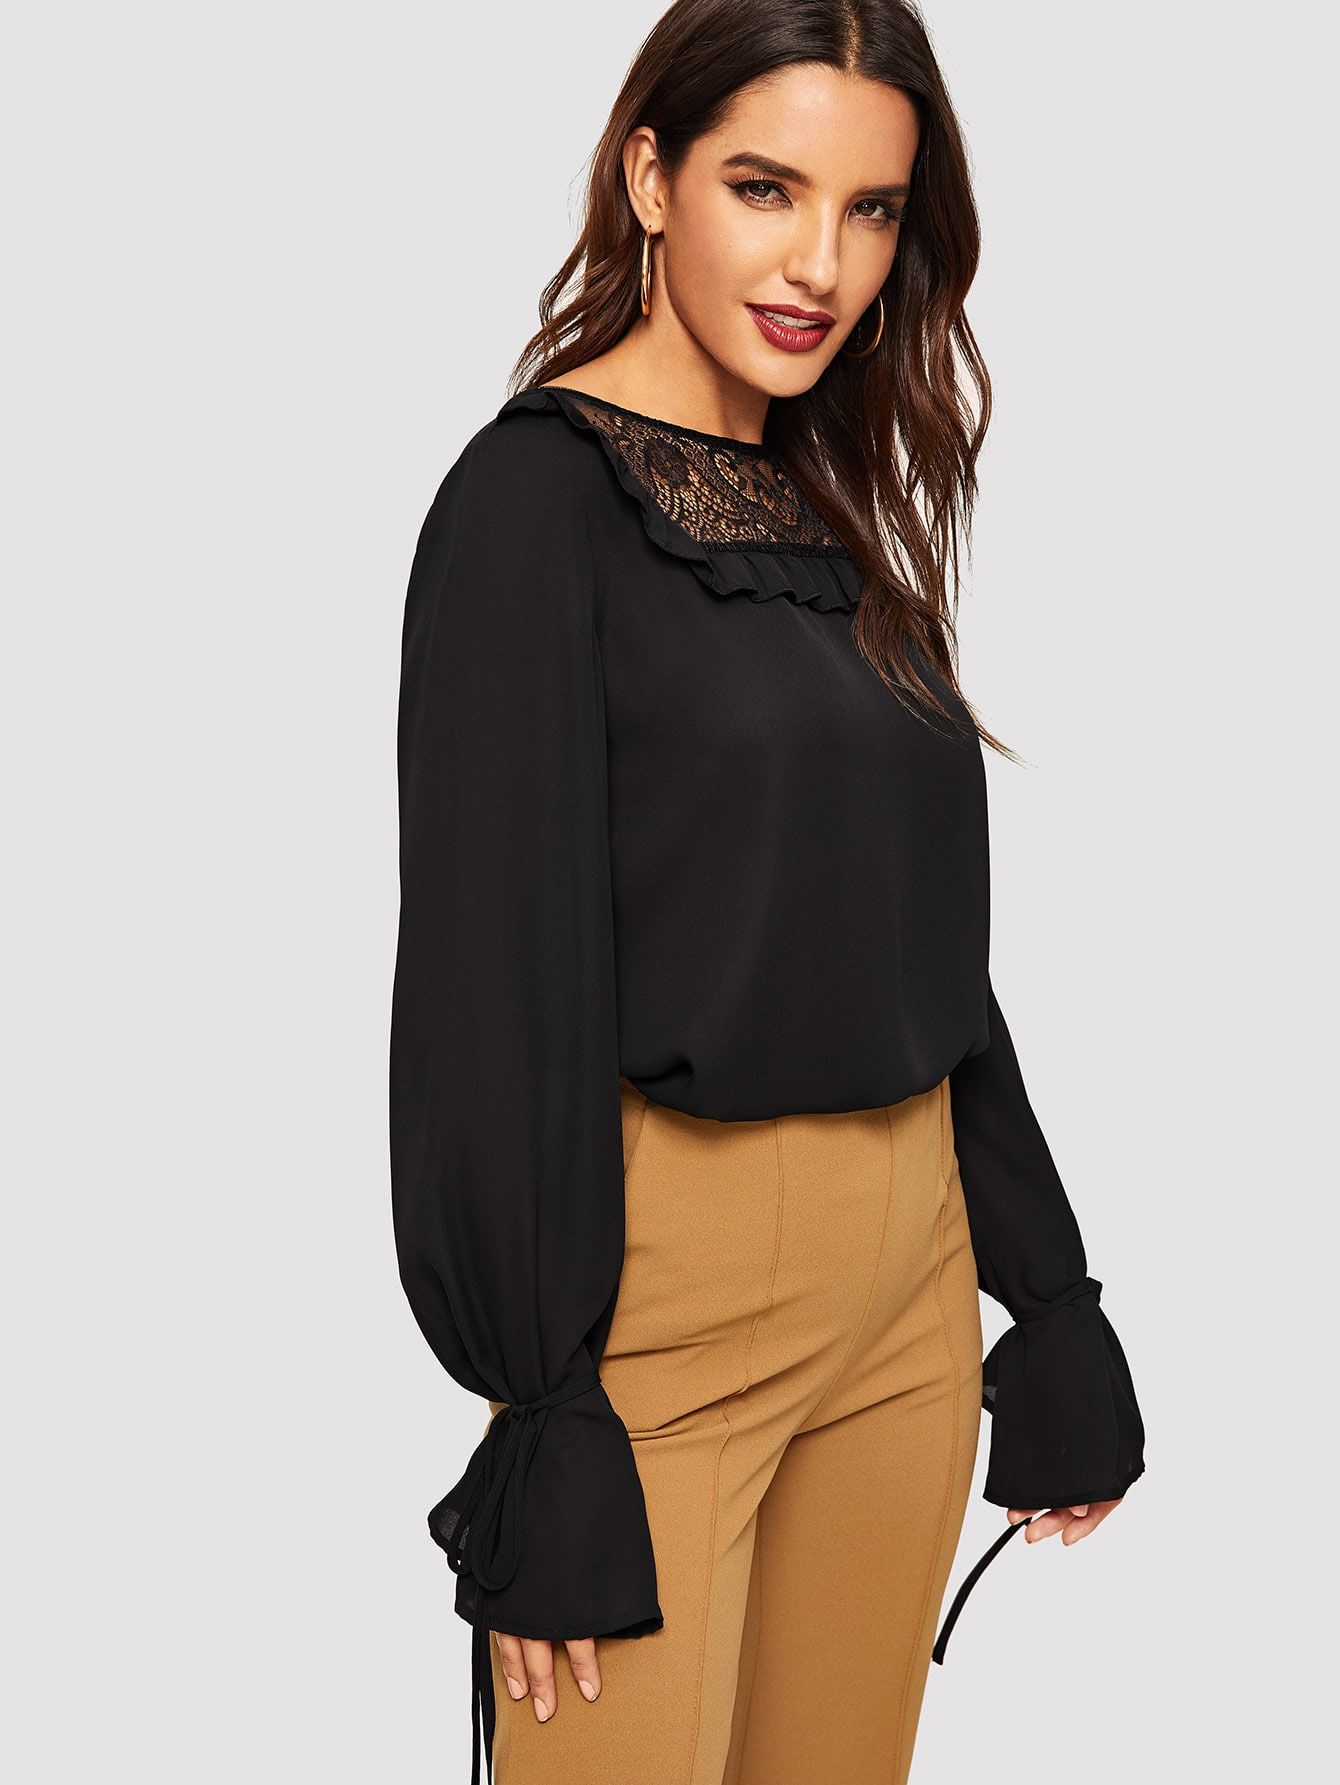 a5f87f103 Elegant Ruffle and Contrast Lace and Sheer and Knot Plain Top Regular Fit  Boat Neck Long Sleeve Flounce Sleeve Pullovers Black Regular Length Ruffle  Detail ...